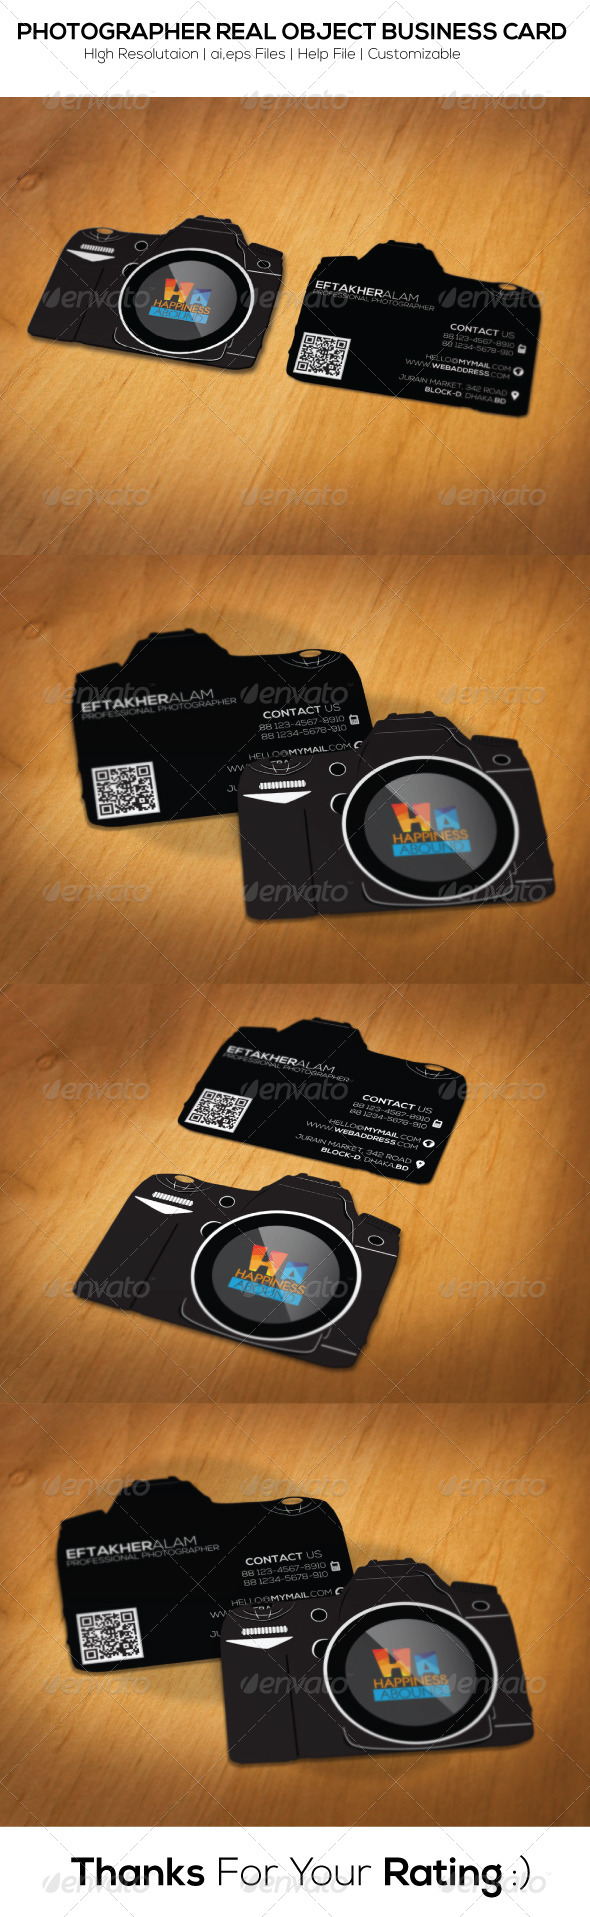 GraphicRiver Photographer Real Object Business Card 6474465